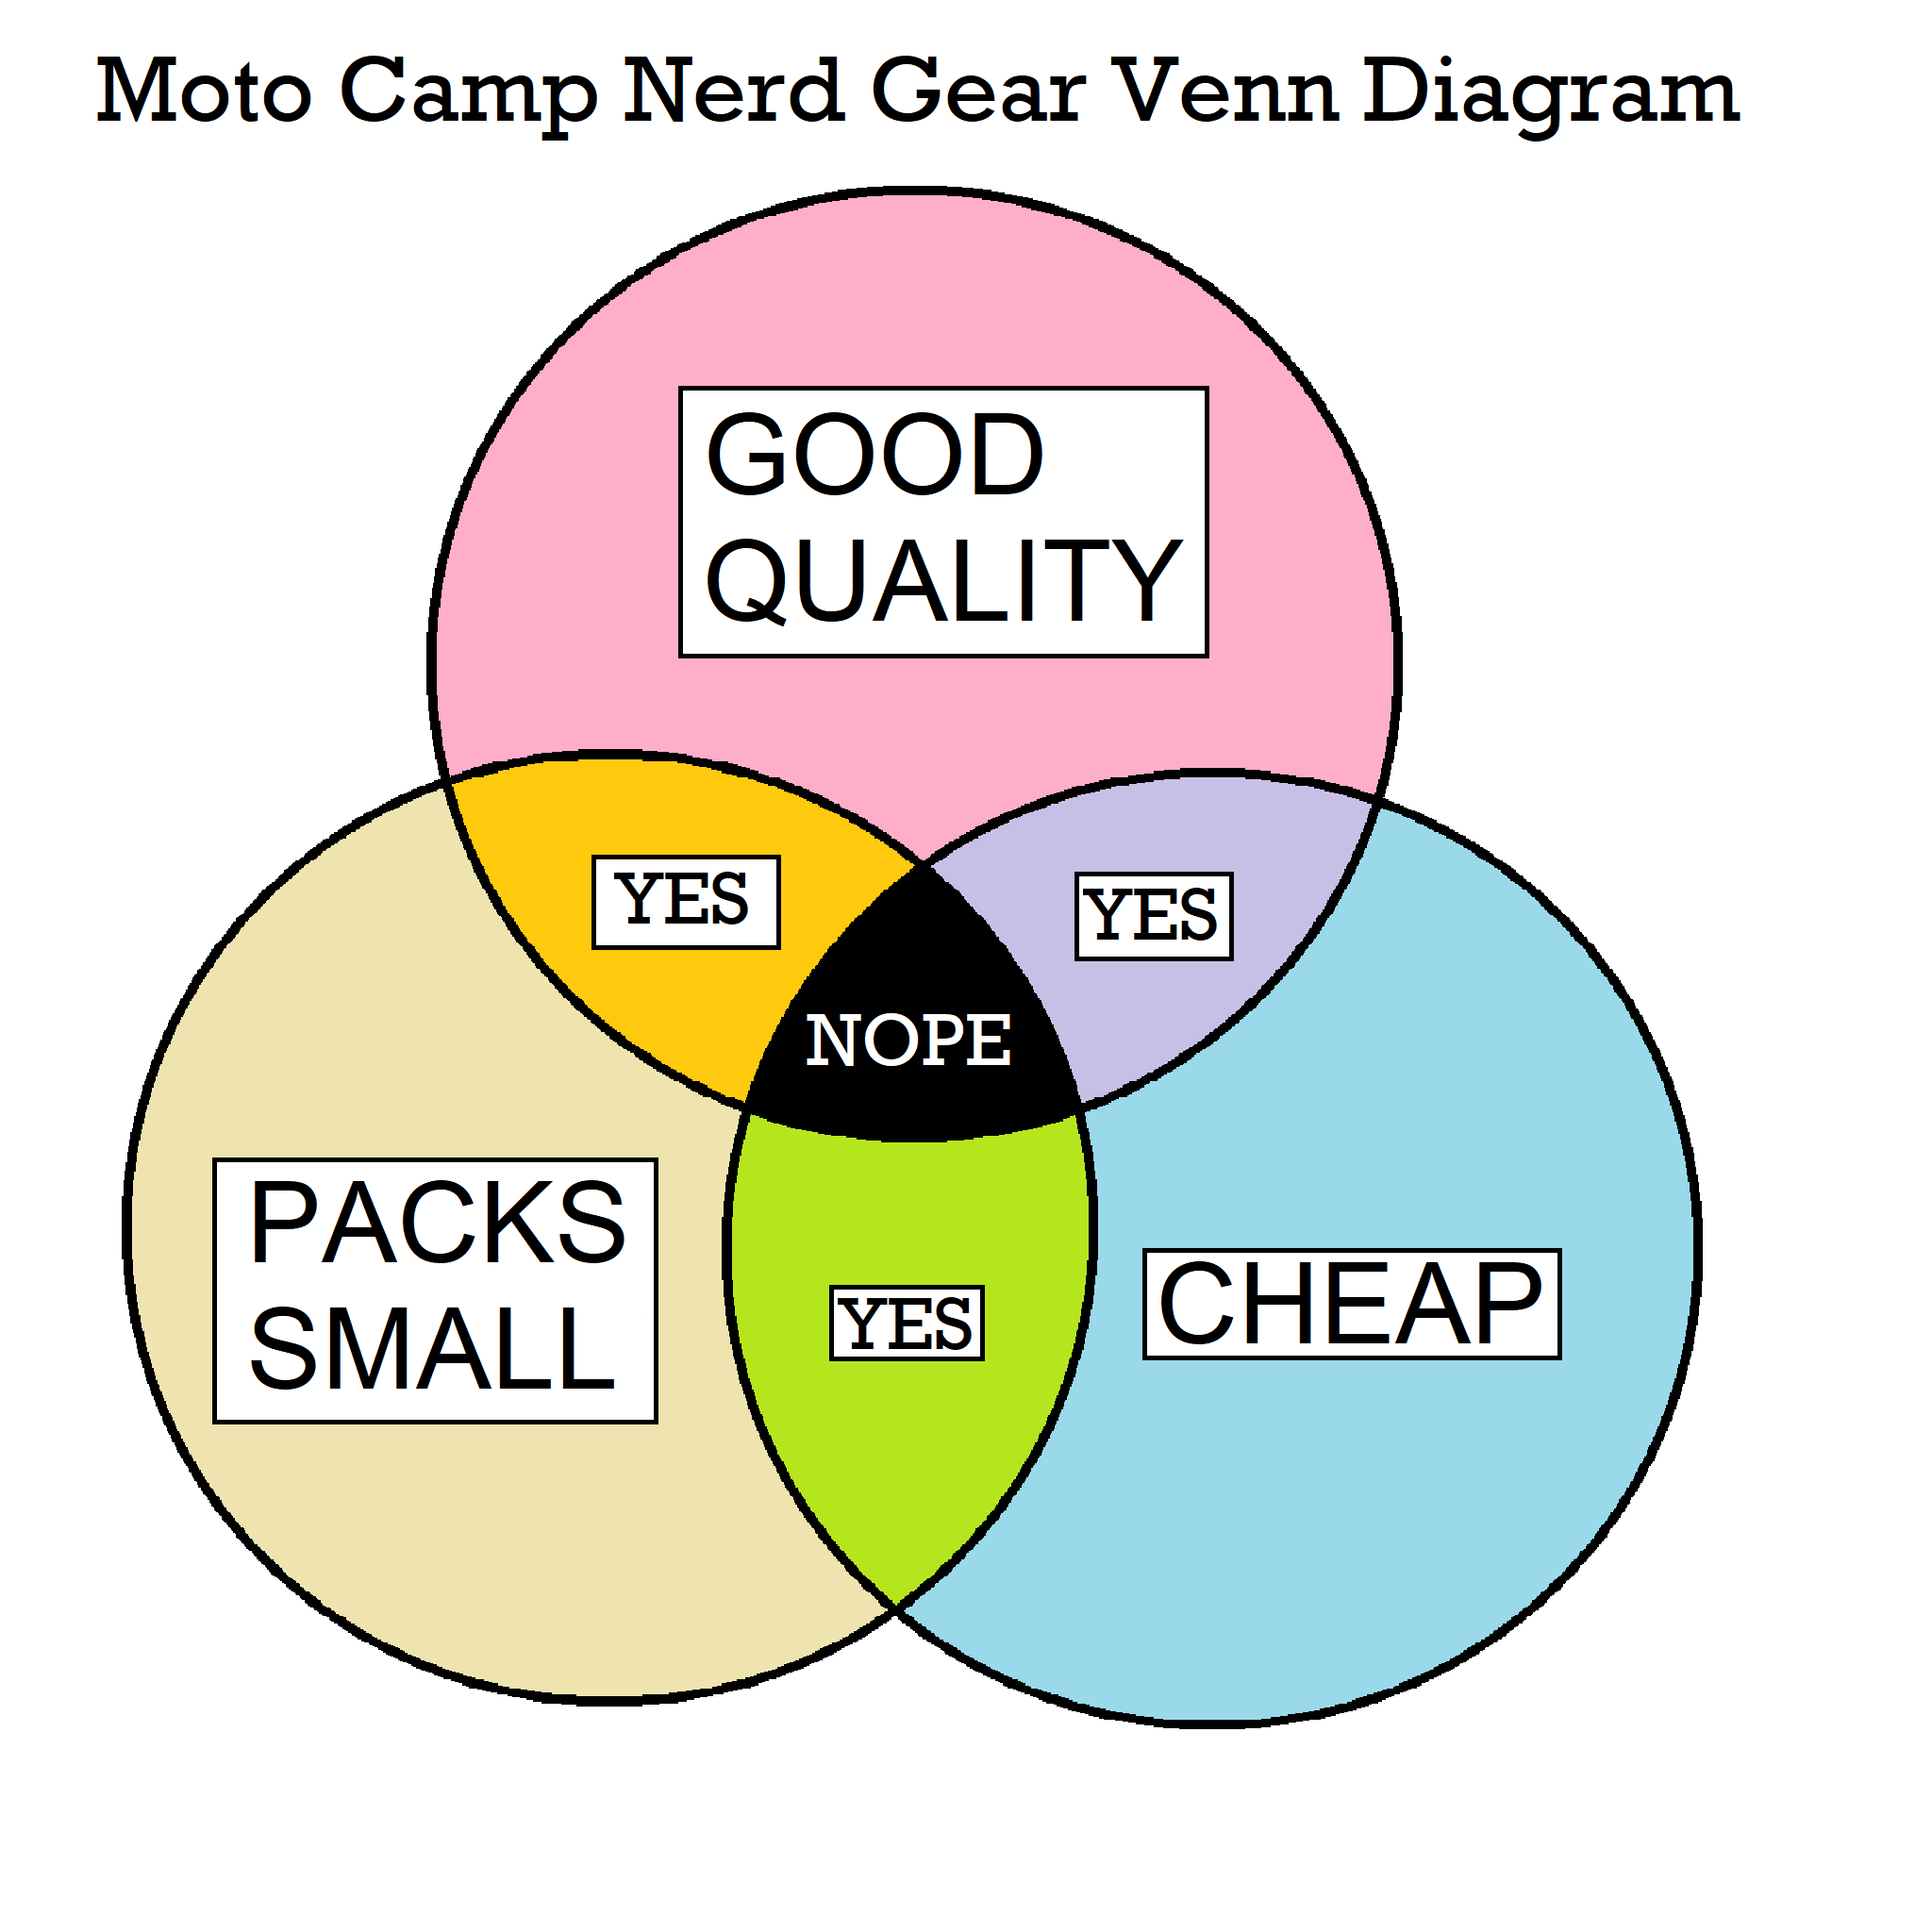 I Want Cheap, Good Quality, Small Packing, Moto Camping Gear